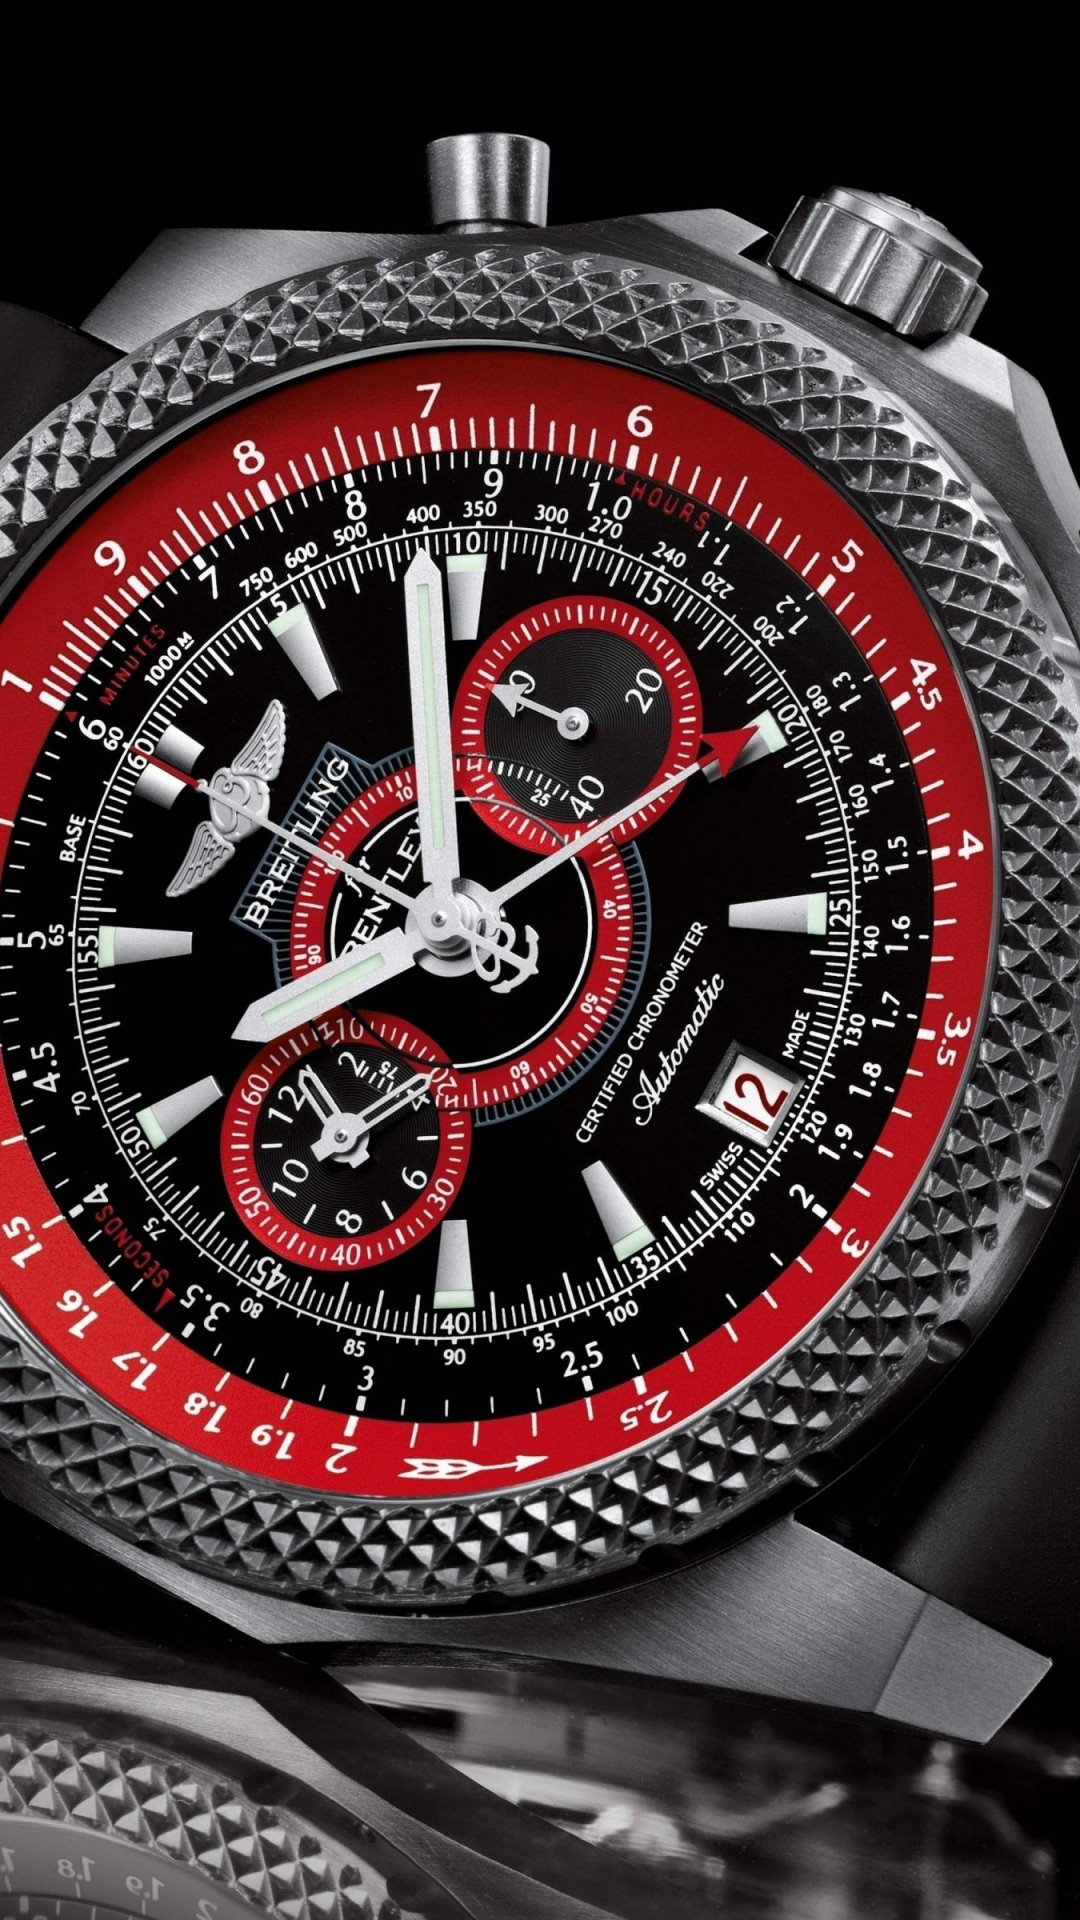 Breitling Watch Wallpaper for SONY Xperia Z2